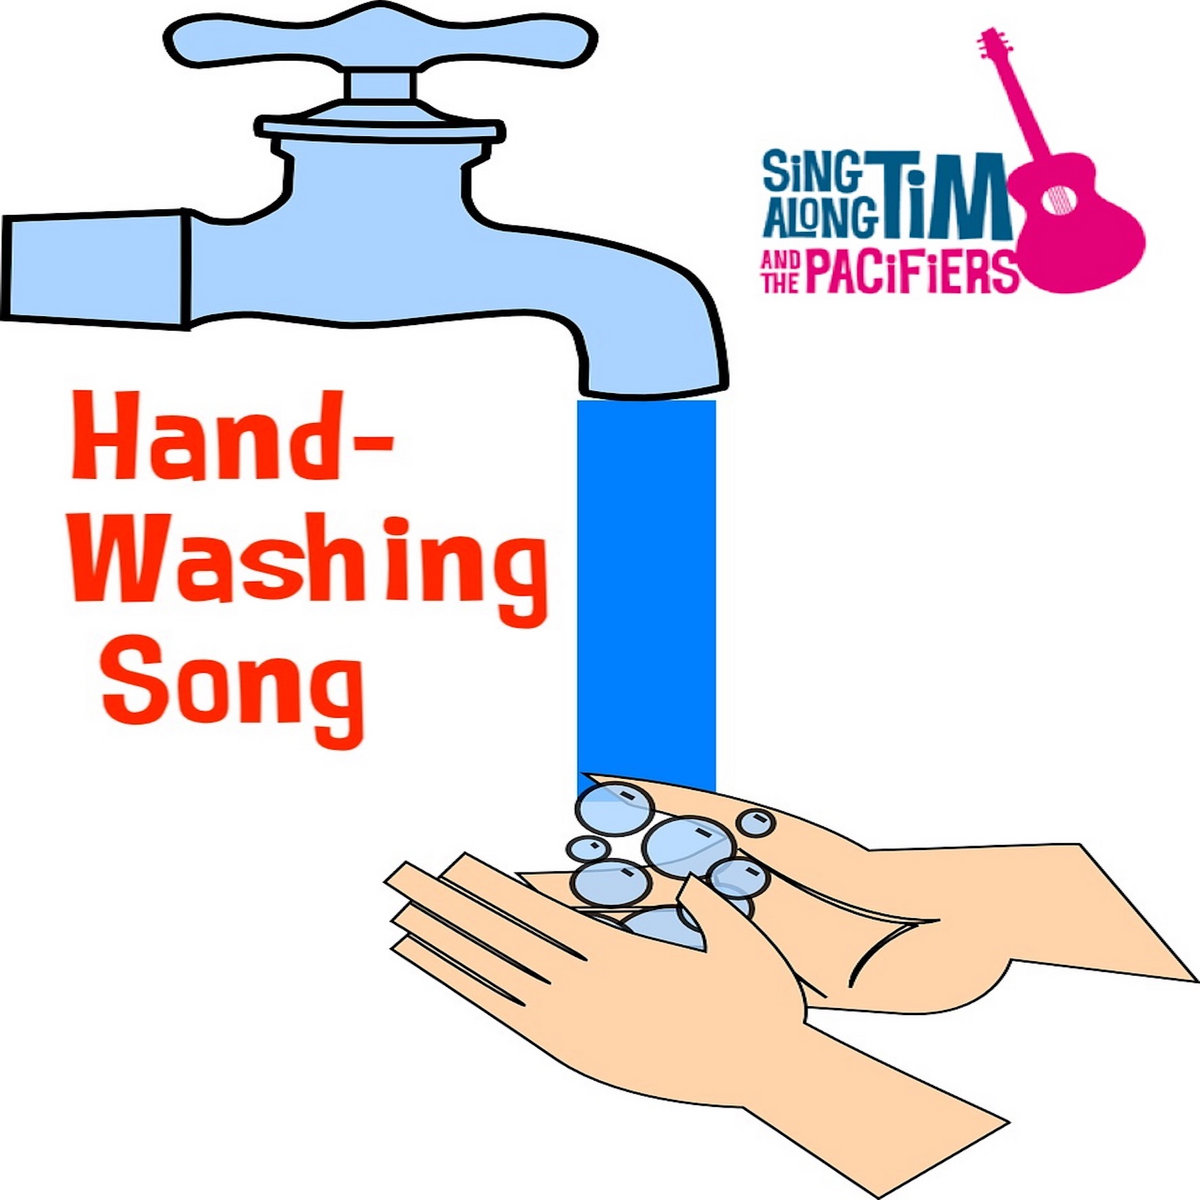 Hand-Washing Song by Sing Along Tim and The Pacifiers